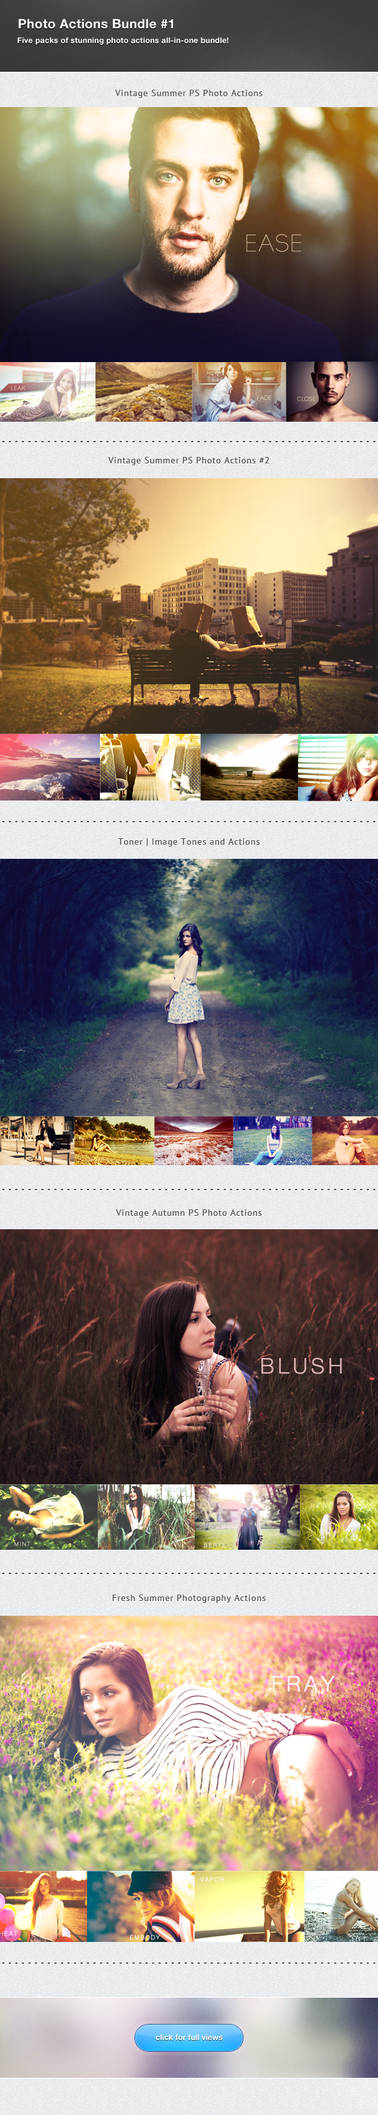 Photography Actions Bundle #1 by frozencolor